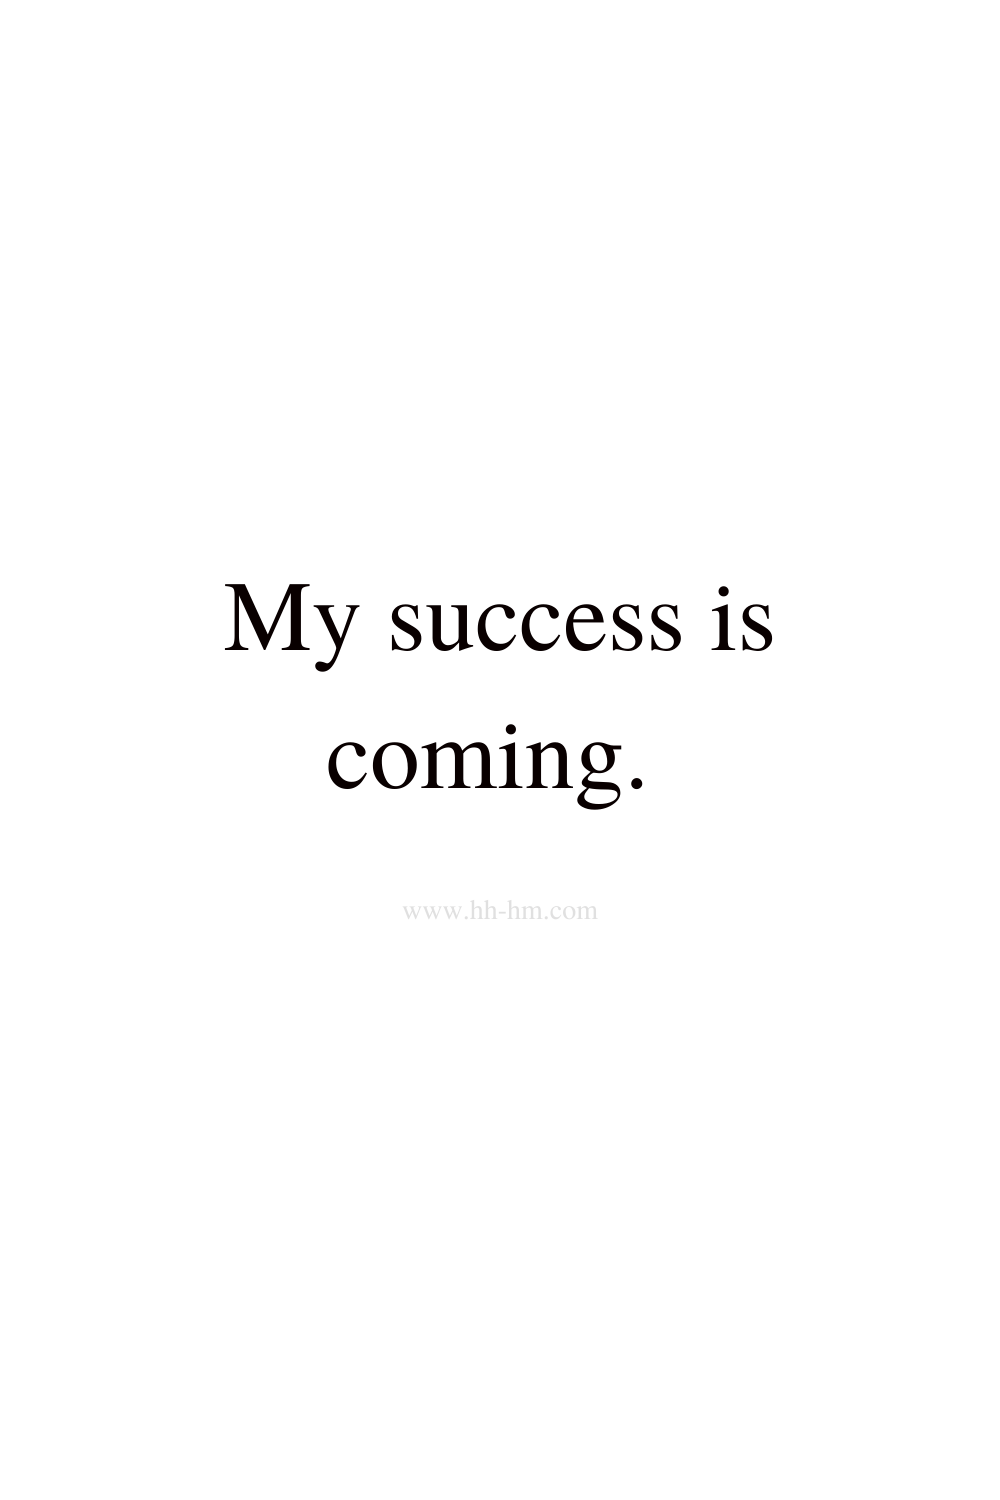 My success is coming - morning affirmations for success